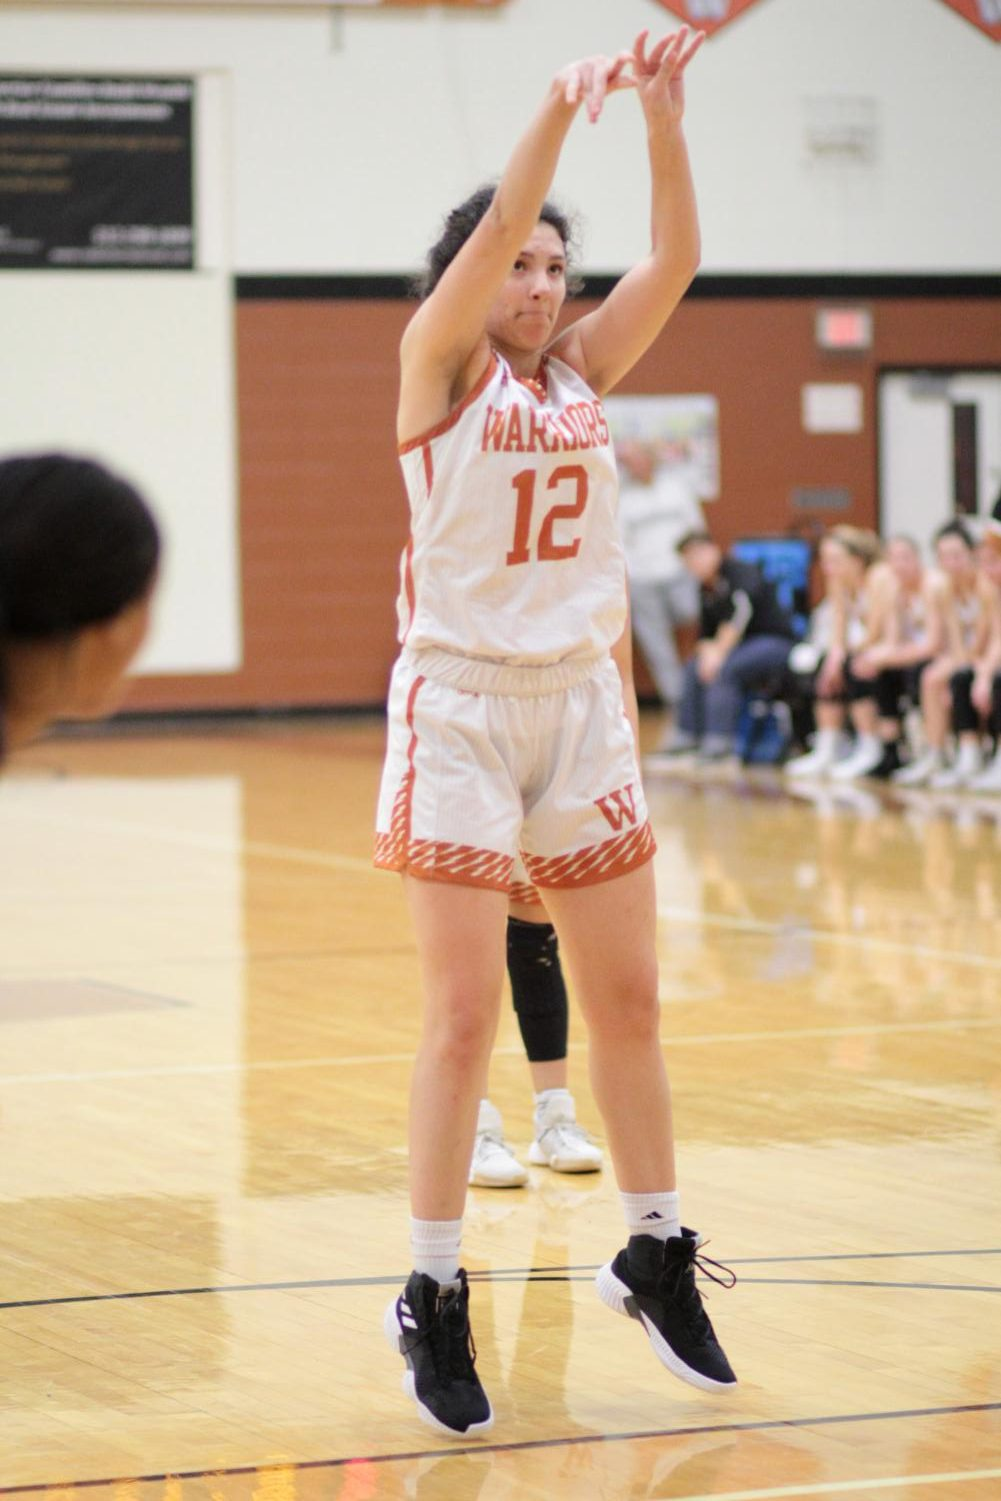 Jumping%2C+Desi+Davalos+%2722+shoots+a+free+throw.+This+was+her+second+shot+and+she+ended+up+scoring+one+more+point+for+the+Warriors.+